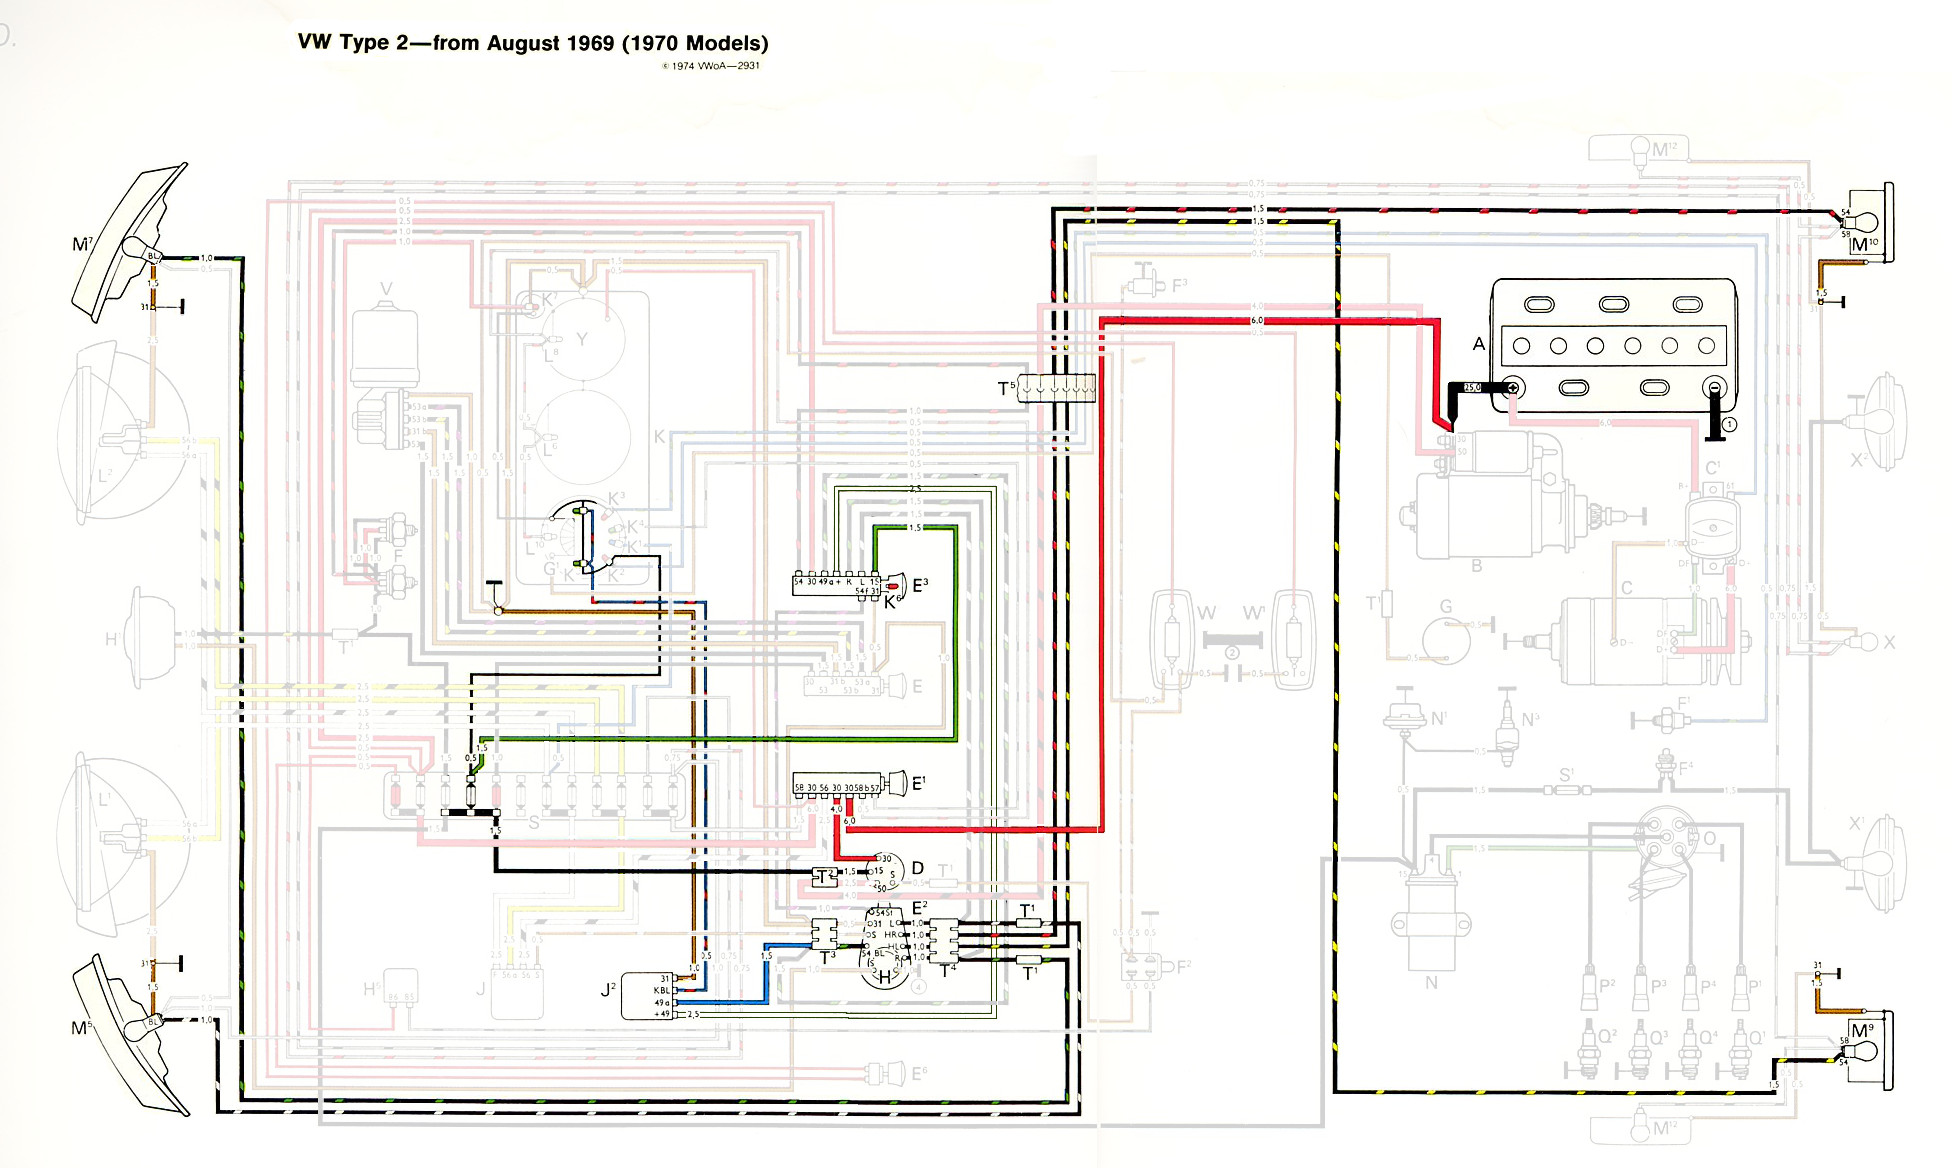 1970bus_signals 1970 vw beetle wiring diagram 1969 vw beetle turn signal wiring 1971 vw bus wiring diagram at crackthecode.co